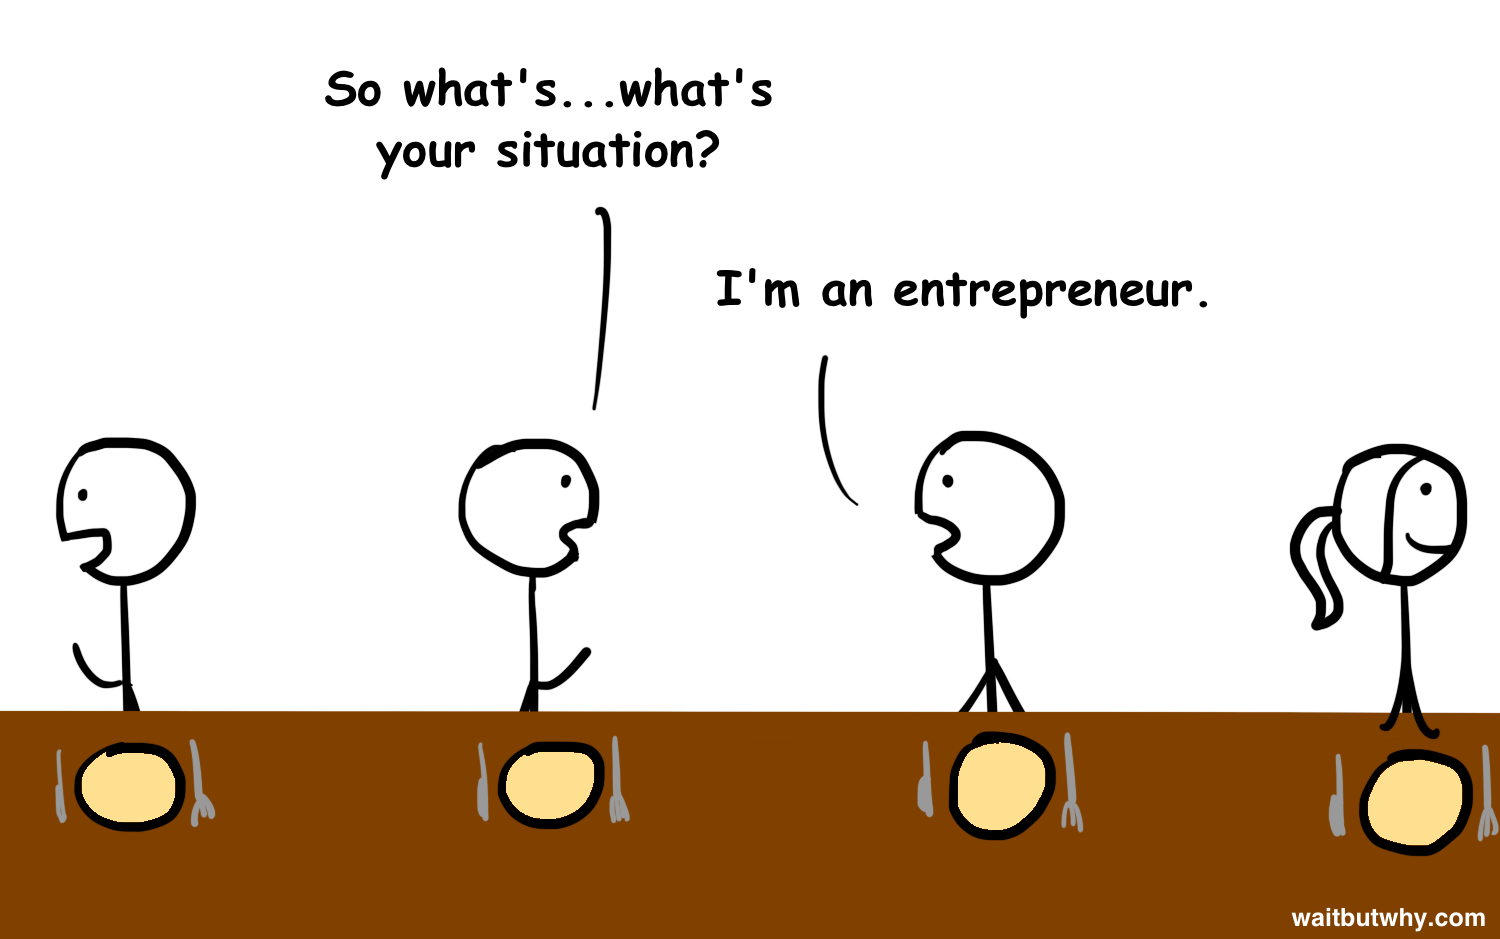 Tim: So what's your situation? Joe: I'm an entrepreneur.